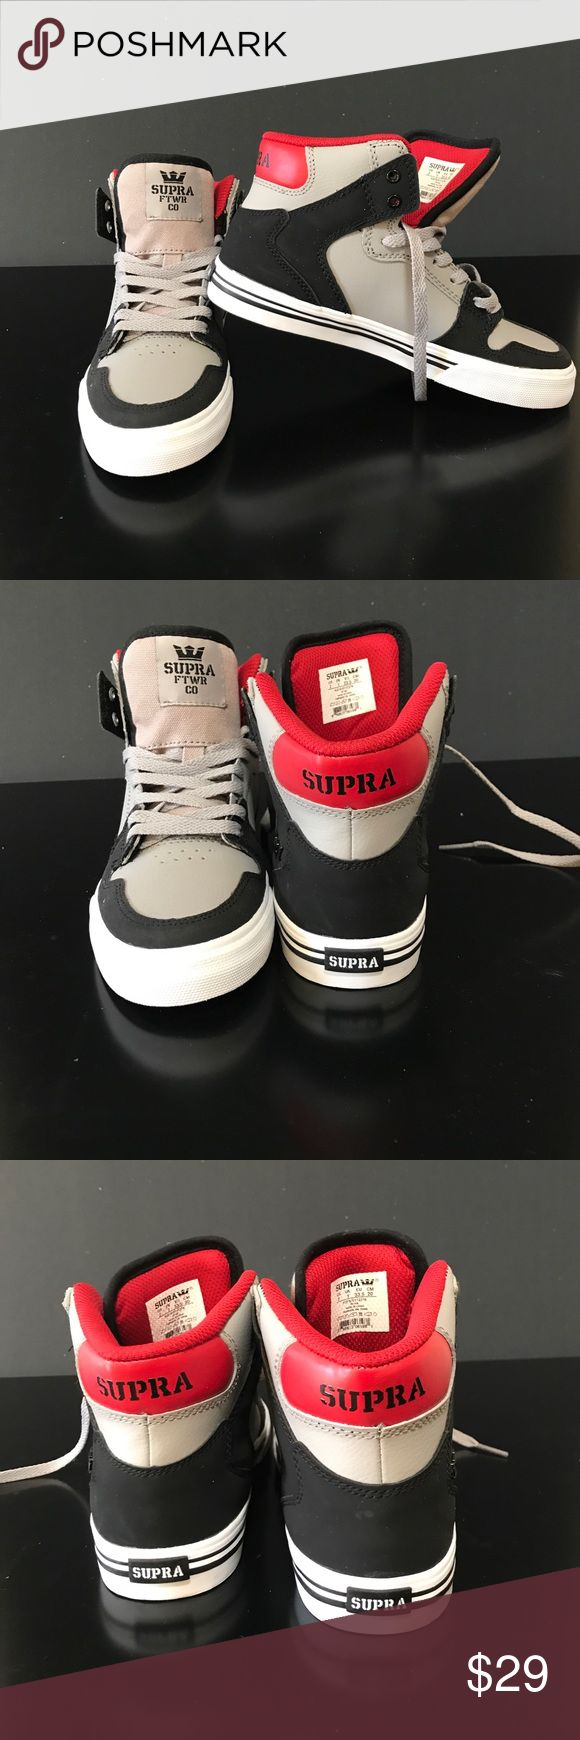 NWOT Supra sneaker for boys or girls. New and awesome high top sneaker.  Size 2 Supra designer brand Supra Shoes Sneakers